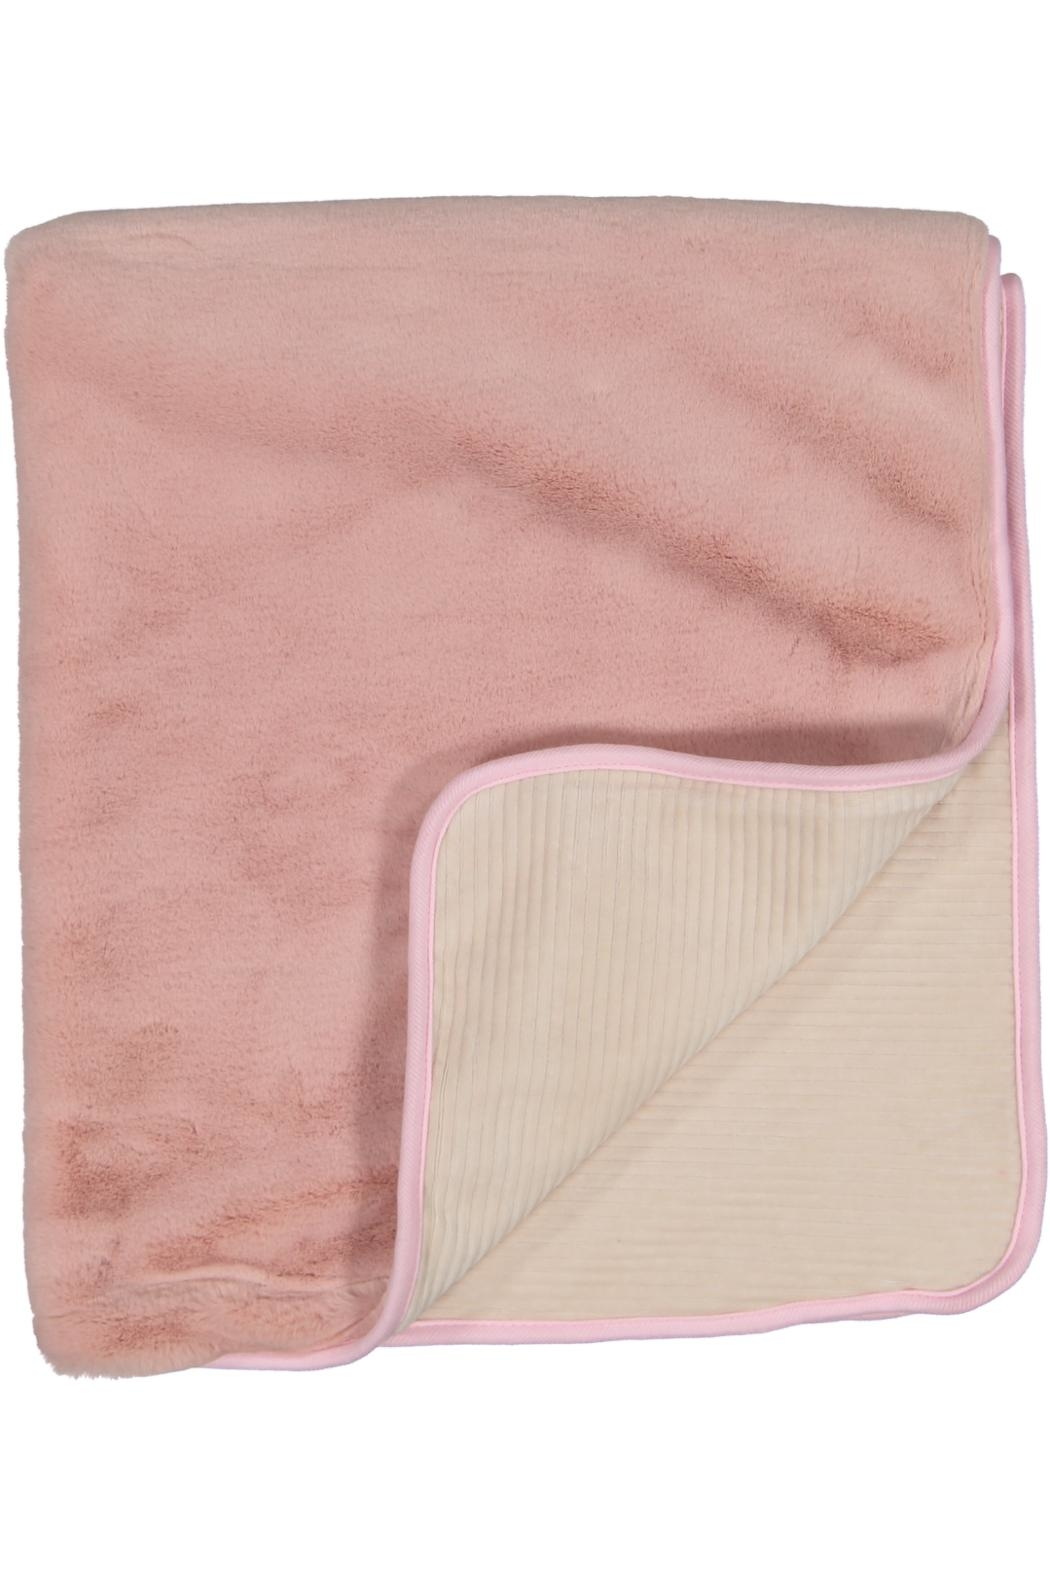 Juste Clé Pink And Beige Fur Blanket - Main Image